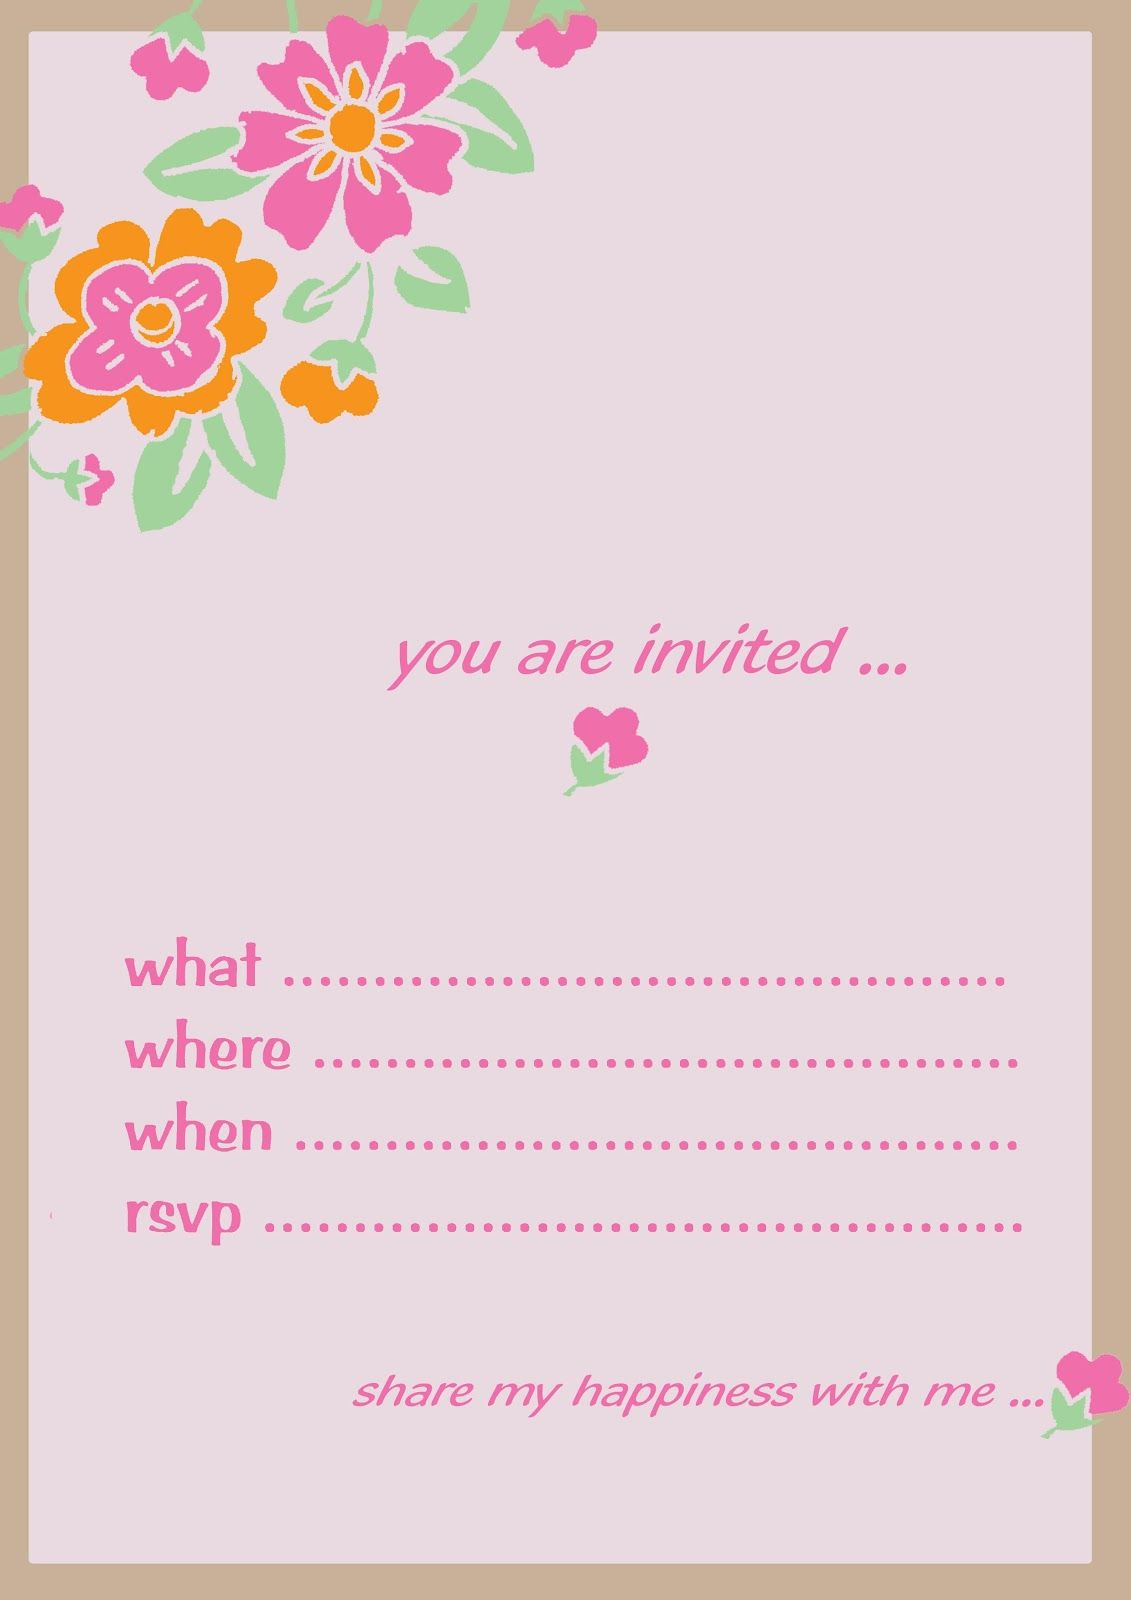 Birthday Invitation Card Design Template Free | neha | Pinterest ...